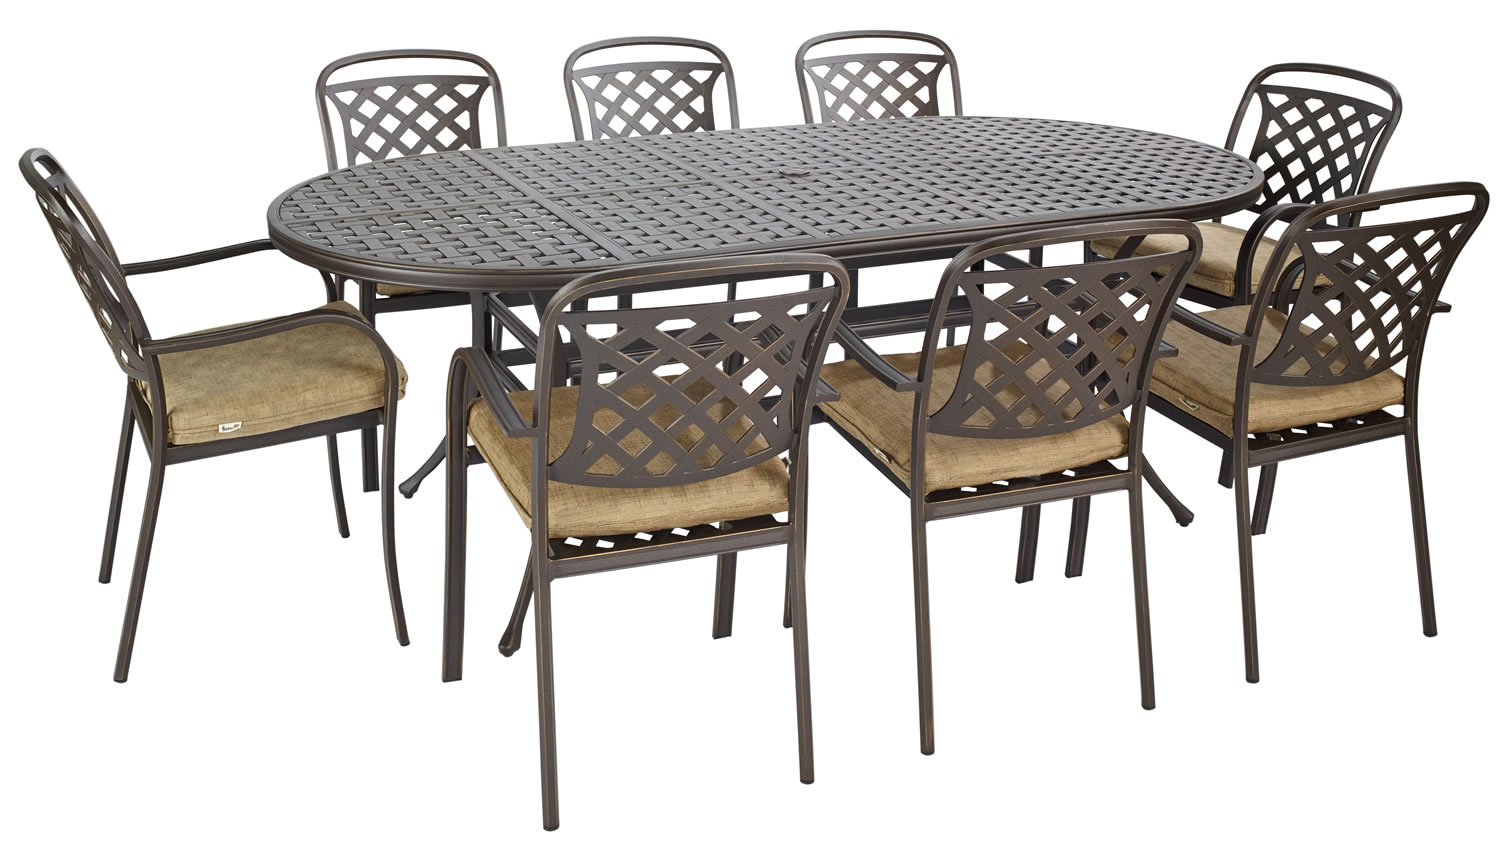 Berkeley Cast Aluminium Oval 8 Seater Garden Dining Set